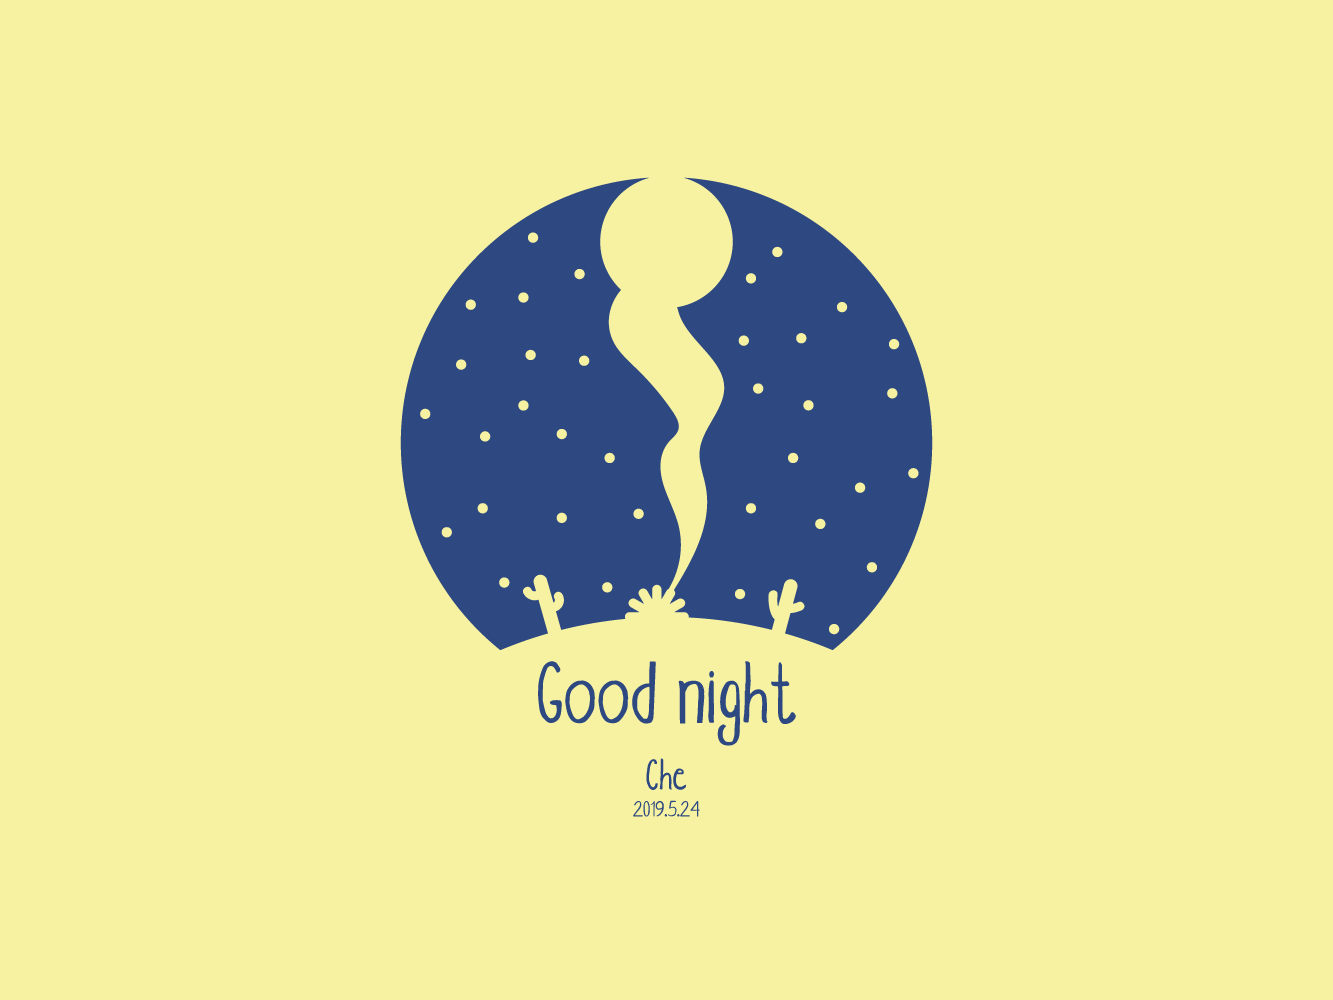 Goodnight pattern logo illustration design